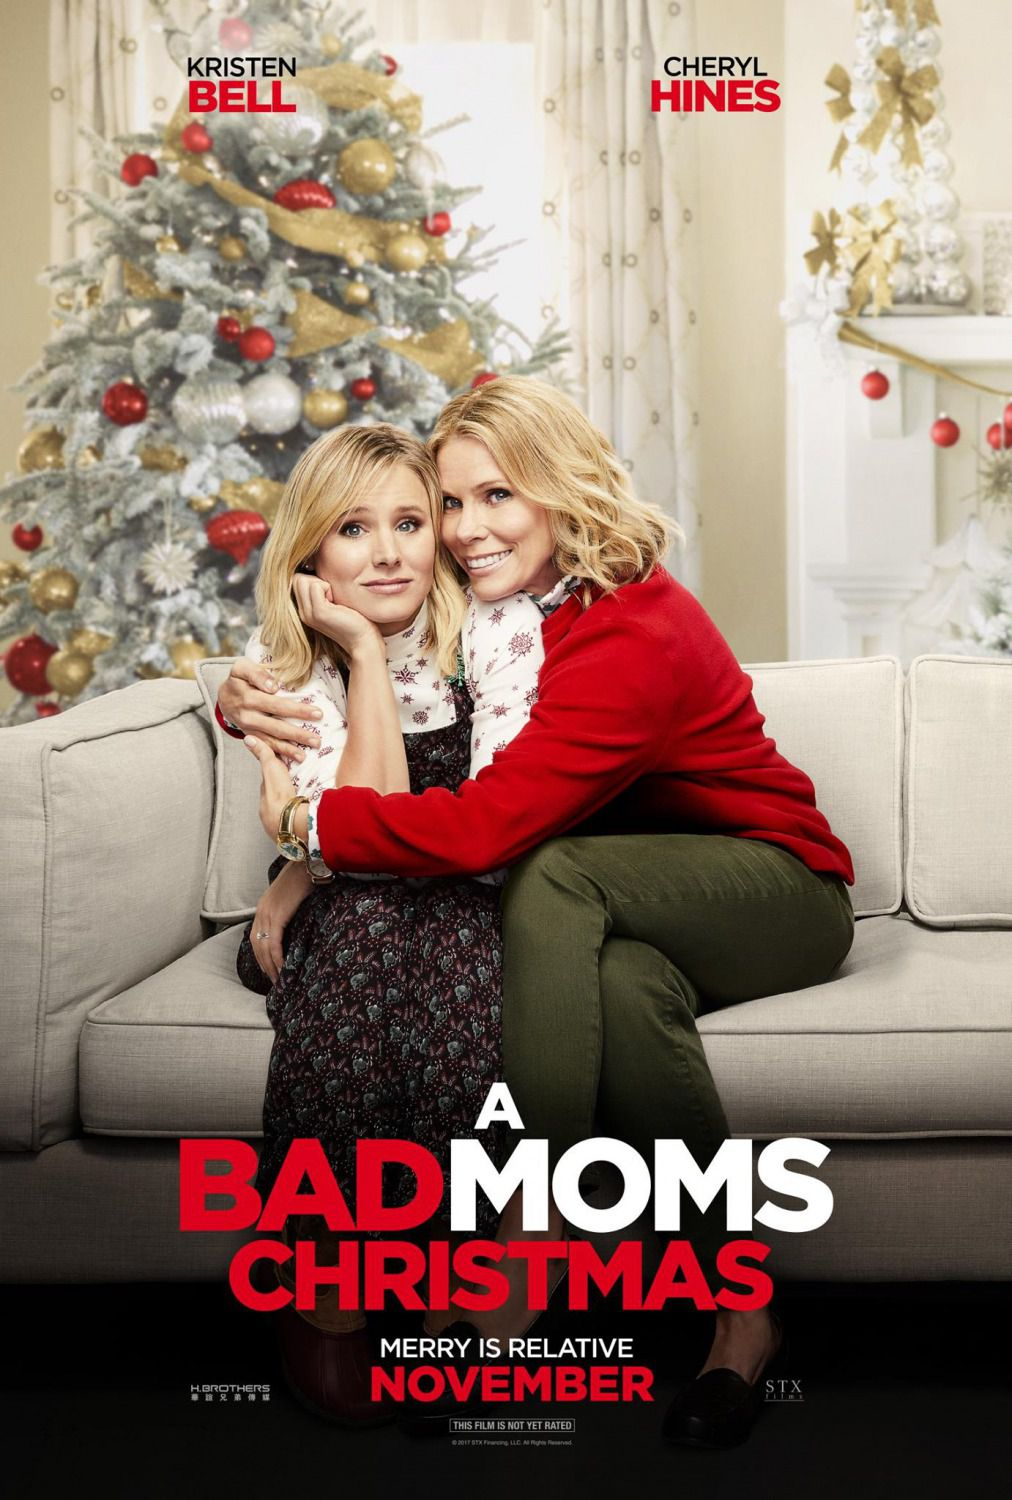 Bad Moms Christmas - Bad Moms 2 – Mamme molto più cattive - film poster - Kristen Bell - Cheryl Hines